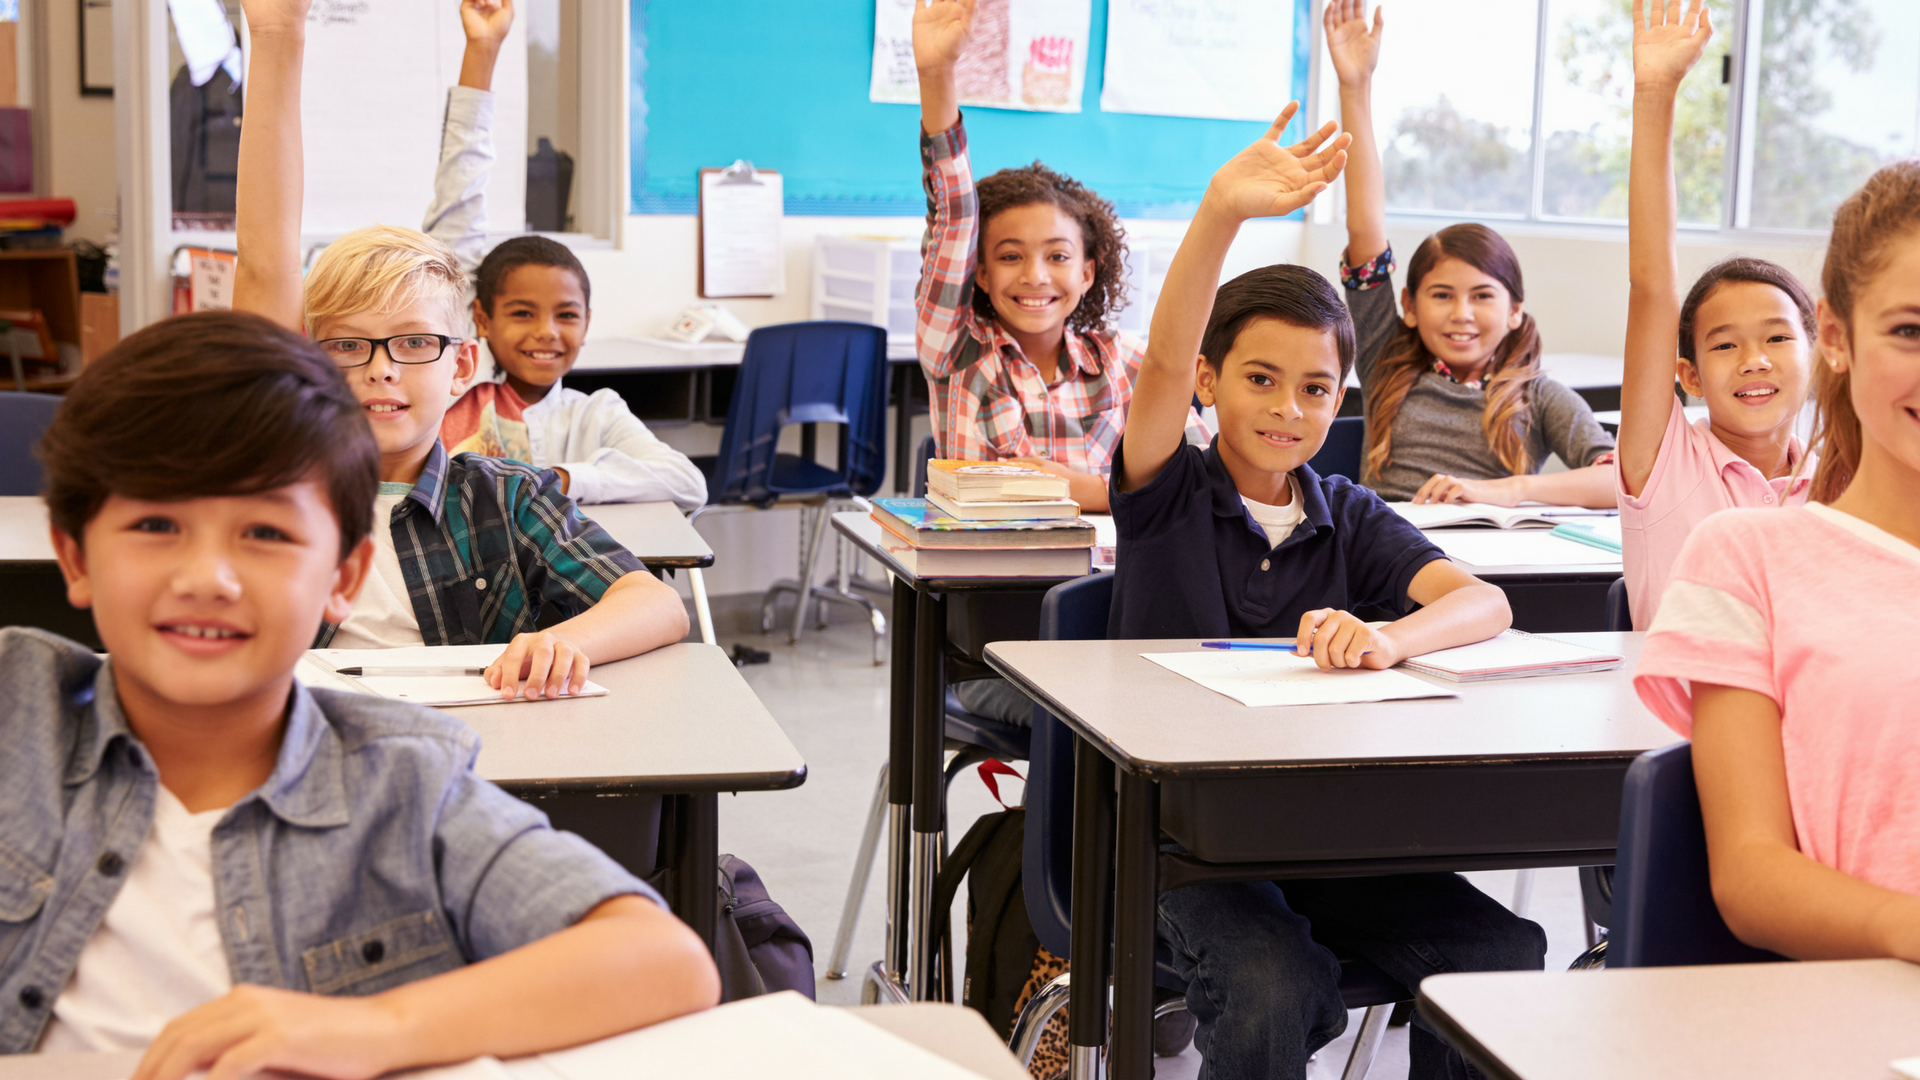 Equitable Identification - Screening all children using multiple measures and benchmarking against local norms increases fairness and the diversity of children identified and served in gifted programs while keeping standards high.